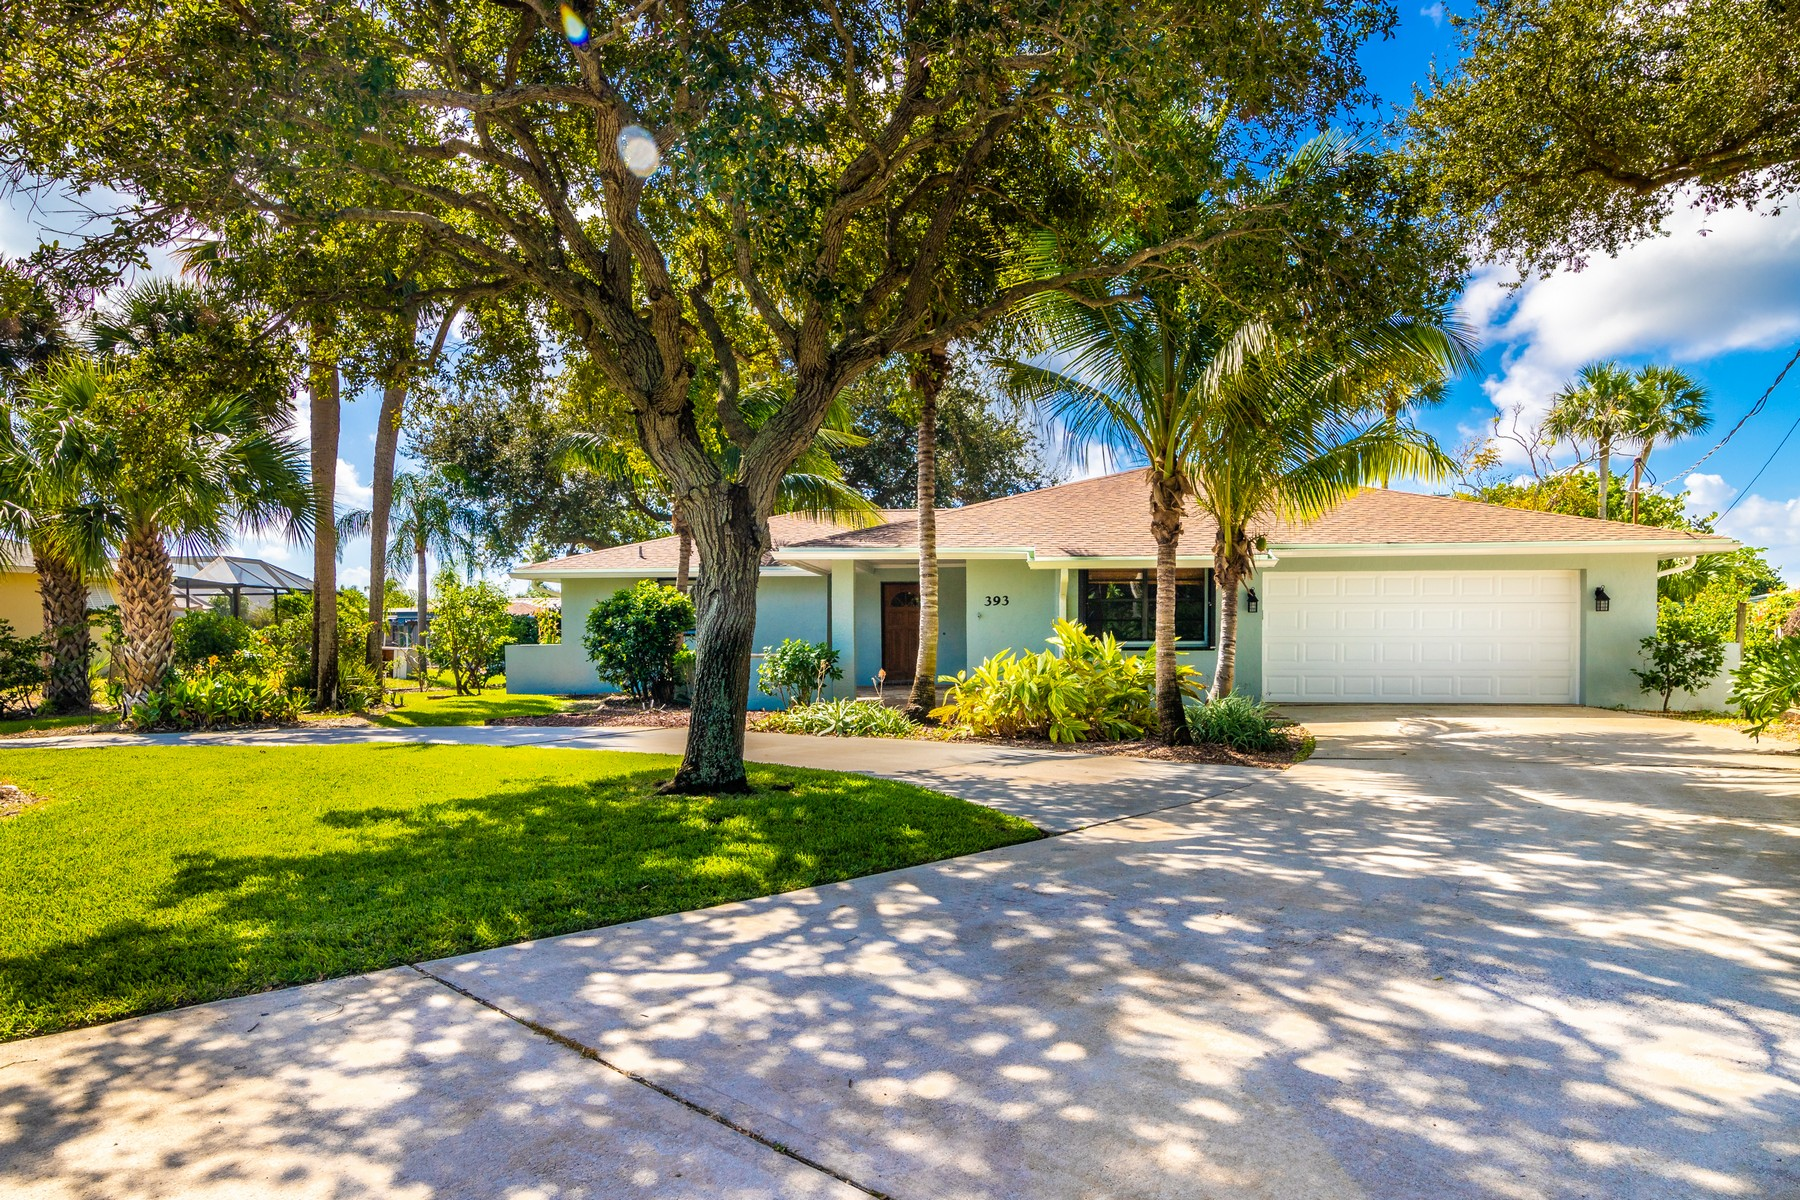 Single Family Homes for Sale at Charming Canal Front Home with Airy, Open Layout 393 Nikomas Way Melbourne Beach, Florida 32951 United States